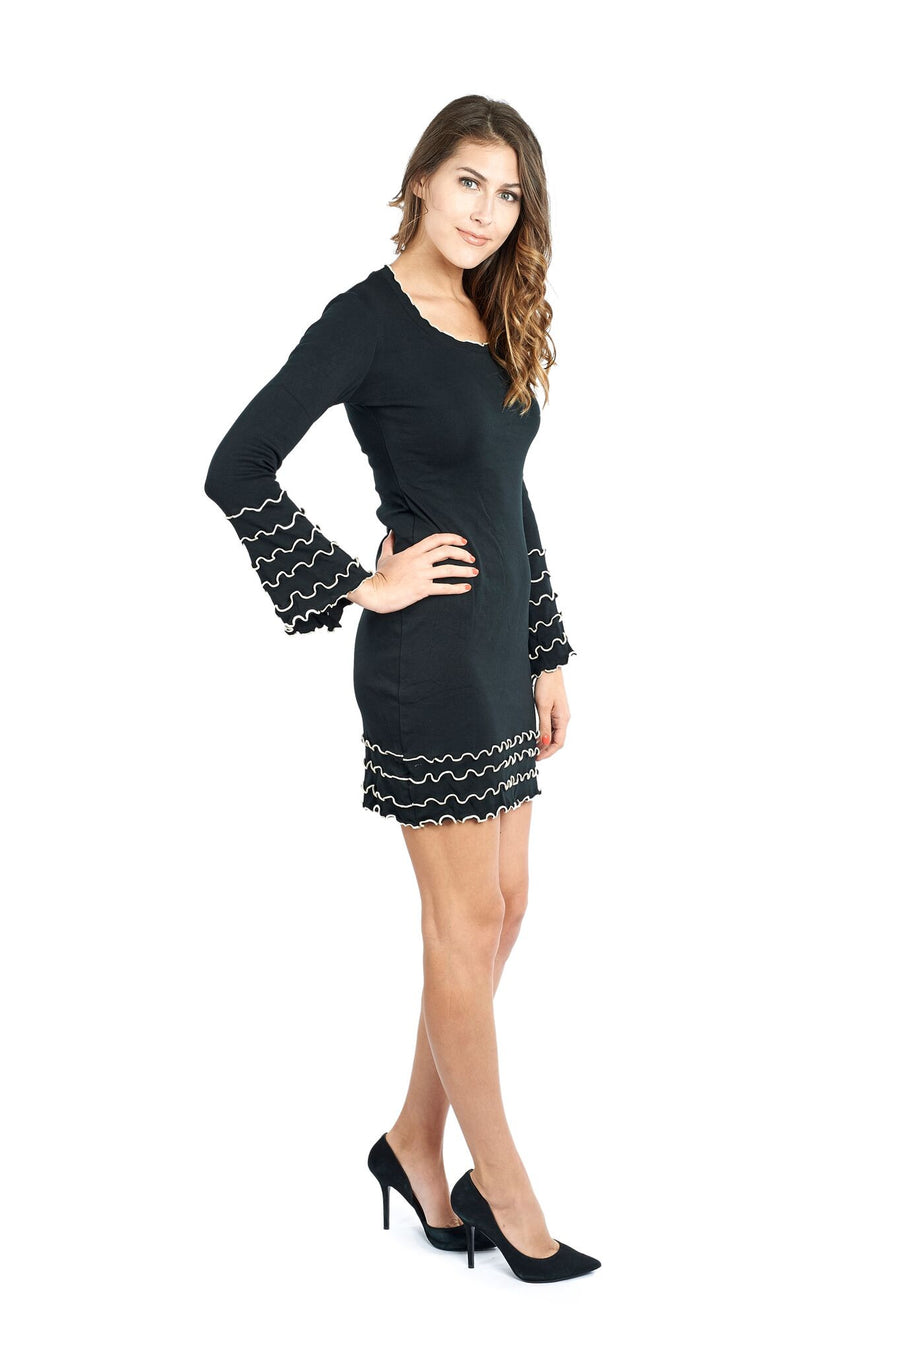 Cotton Long Sleeve Dress with Ruffle Edging